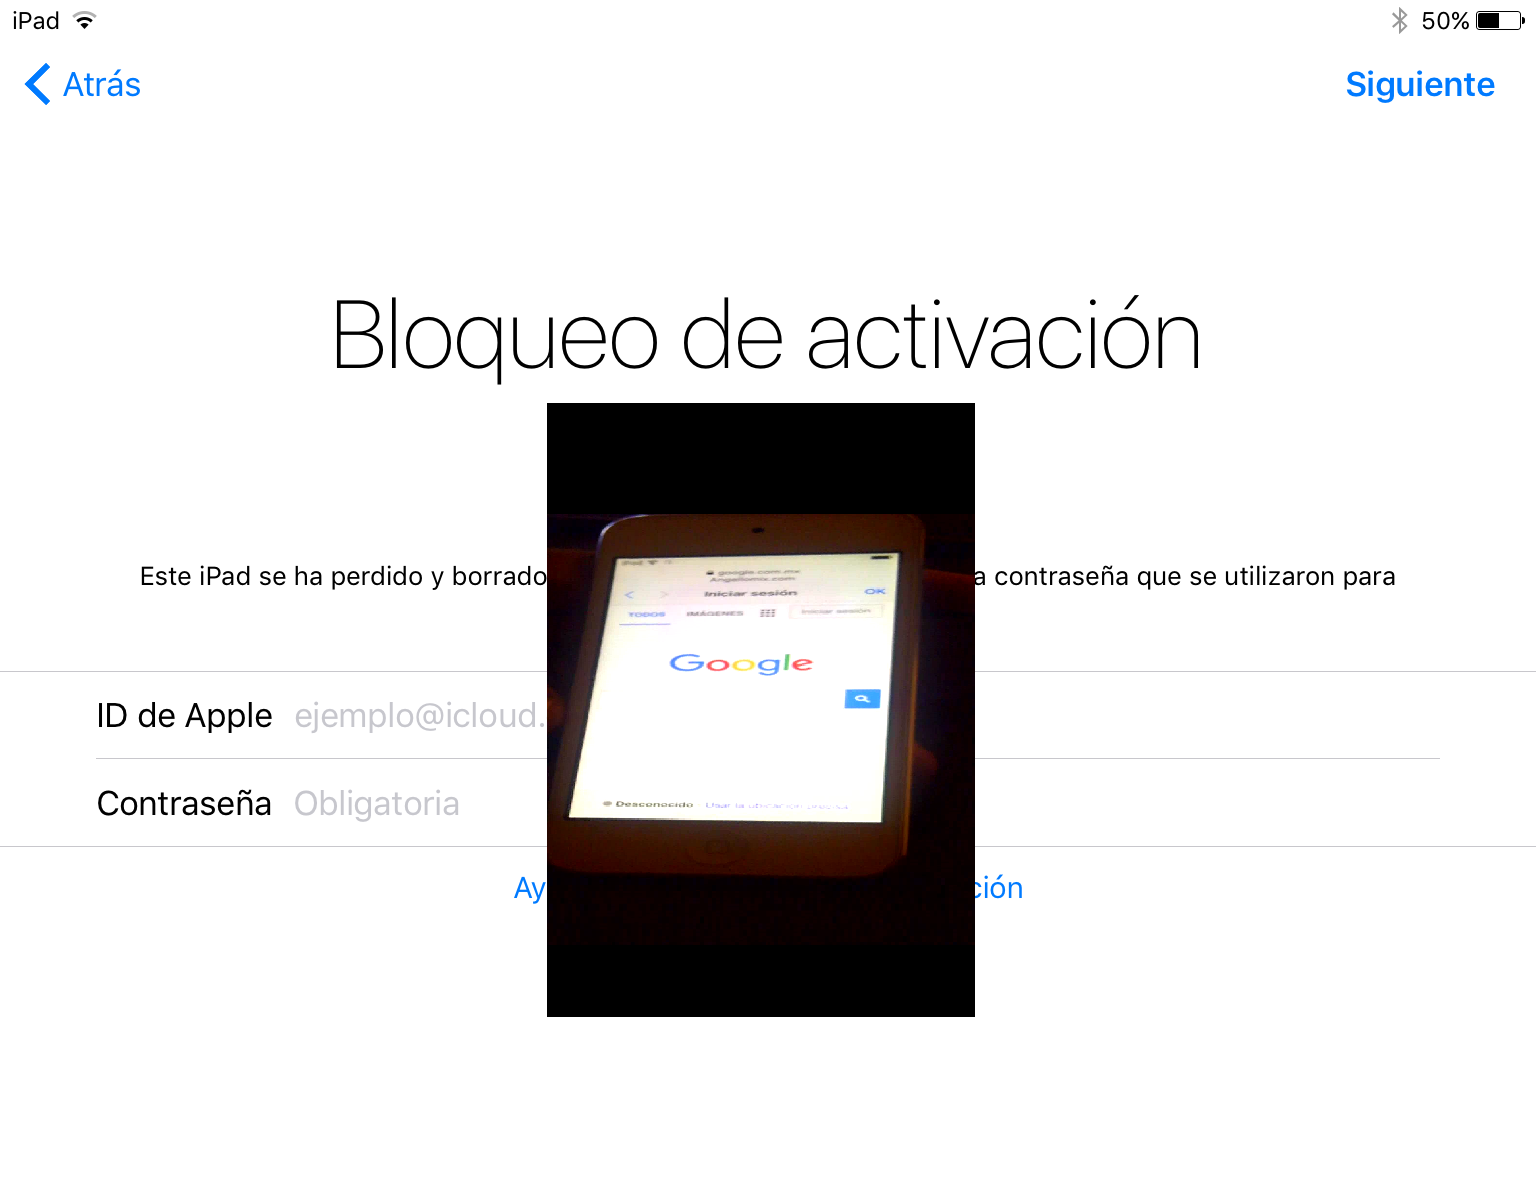 Saltar bloqueo de activación en una iPod touch (5th generation) by angellomix